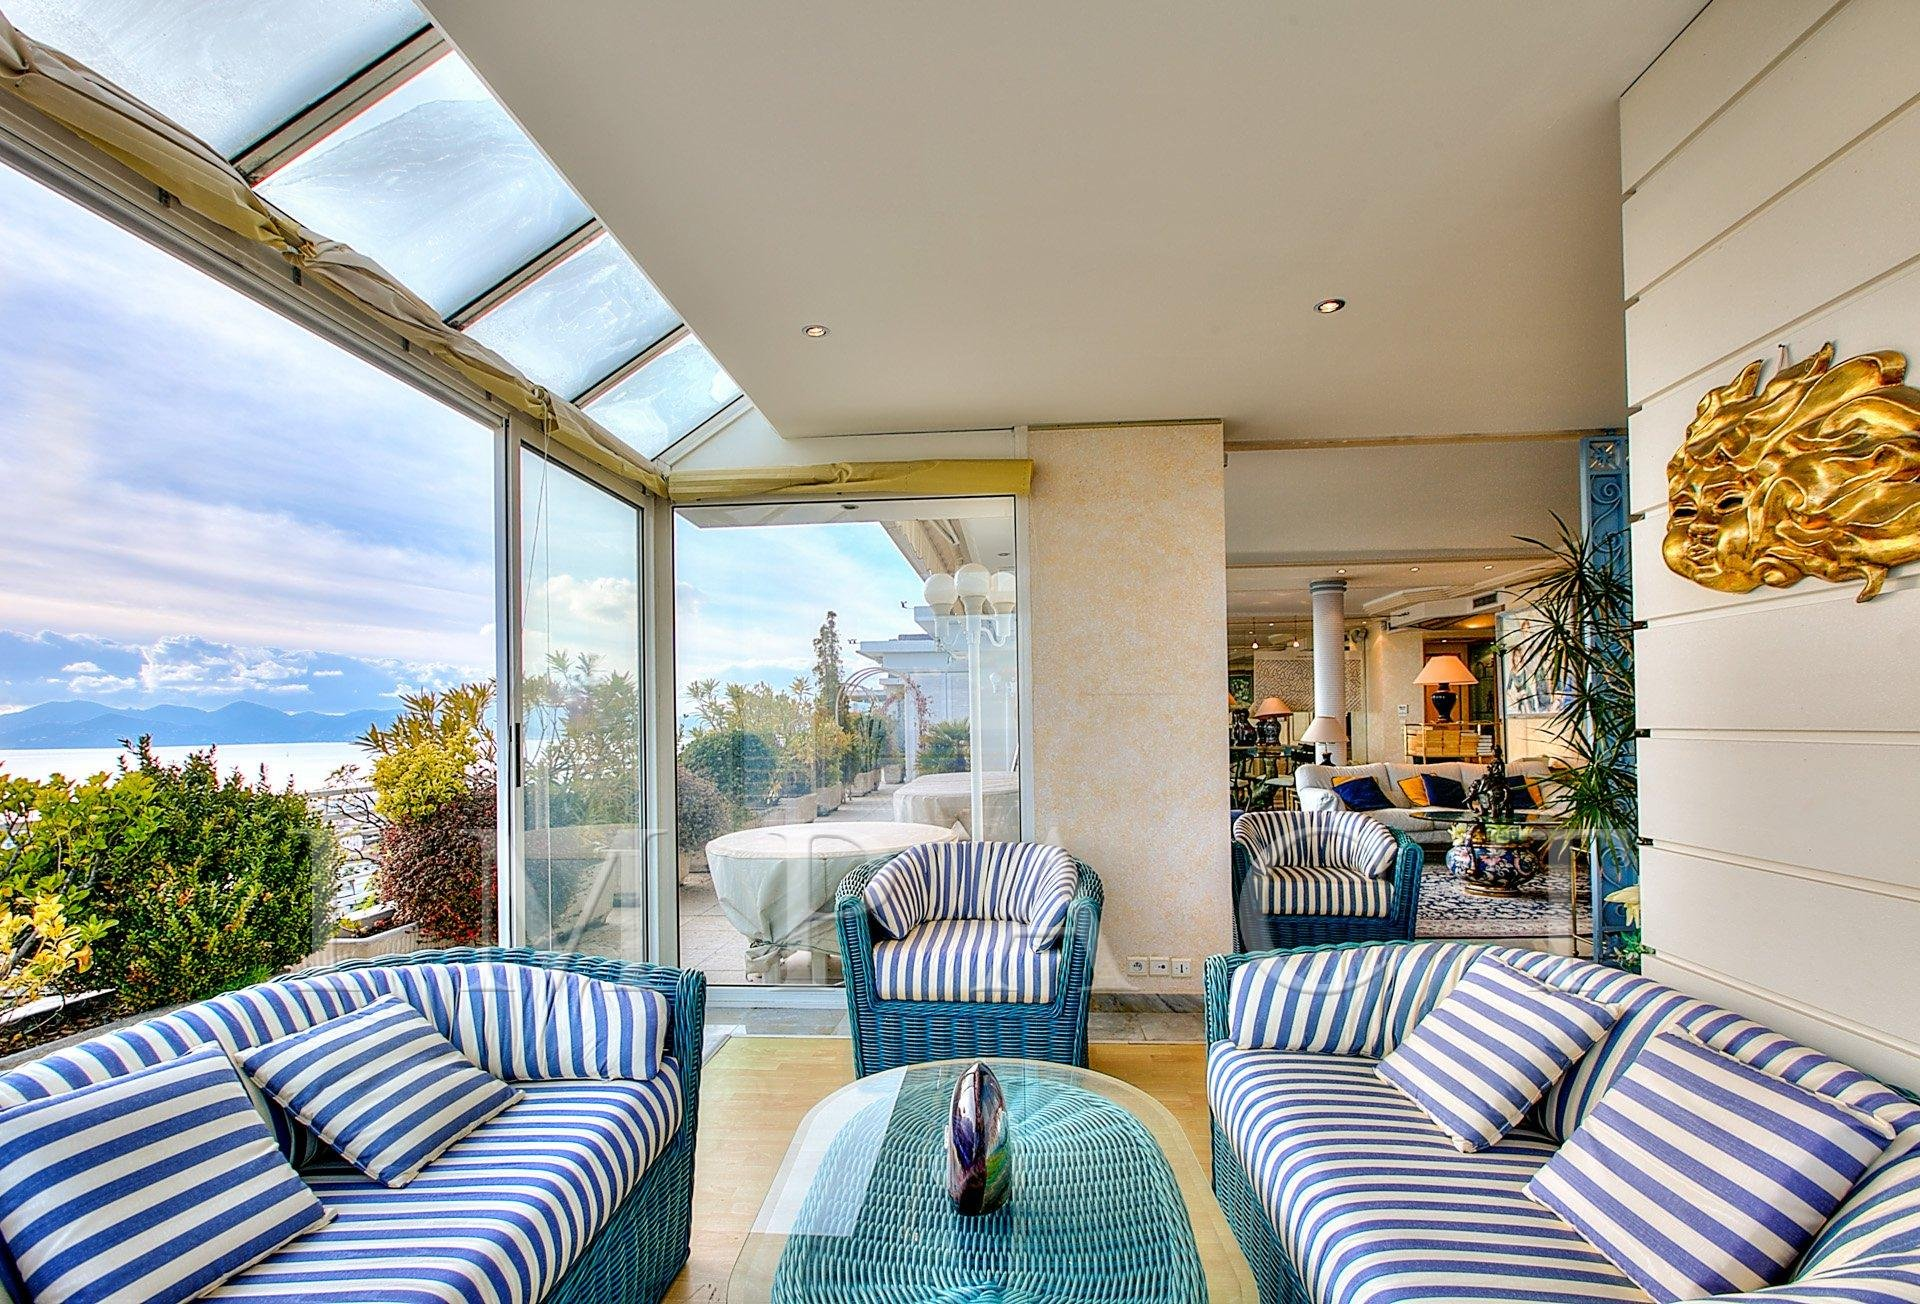 Apartment Villa - Penthouse for sale Cannes Basse Californie